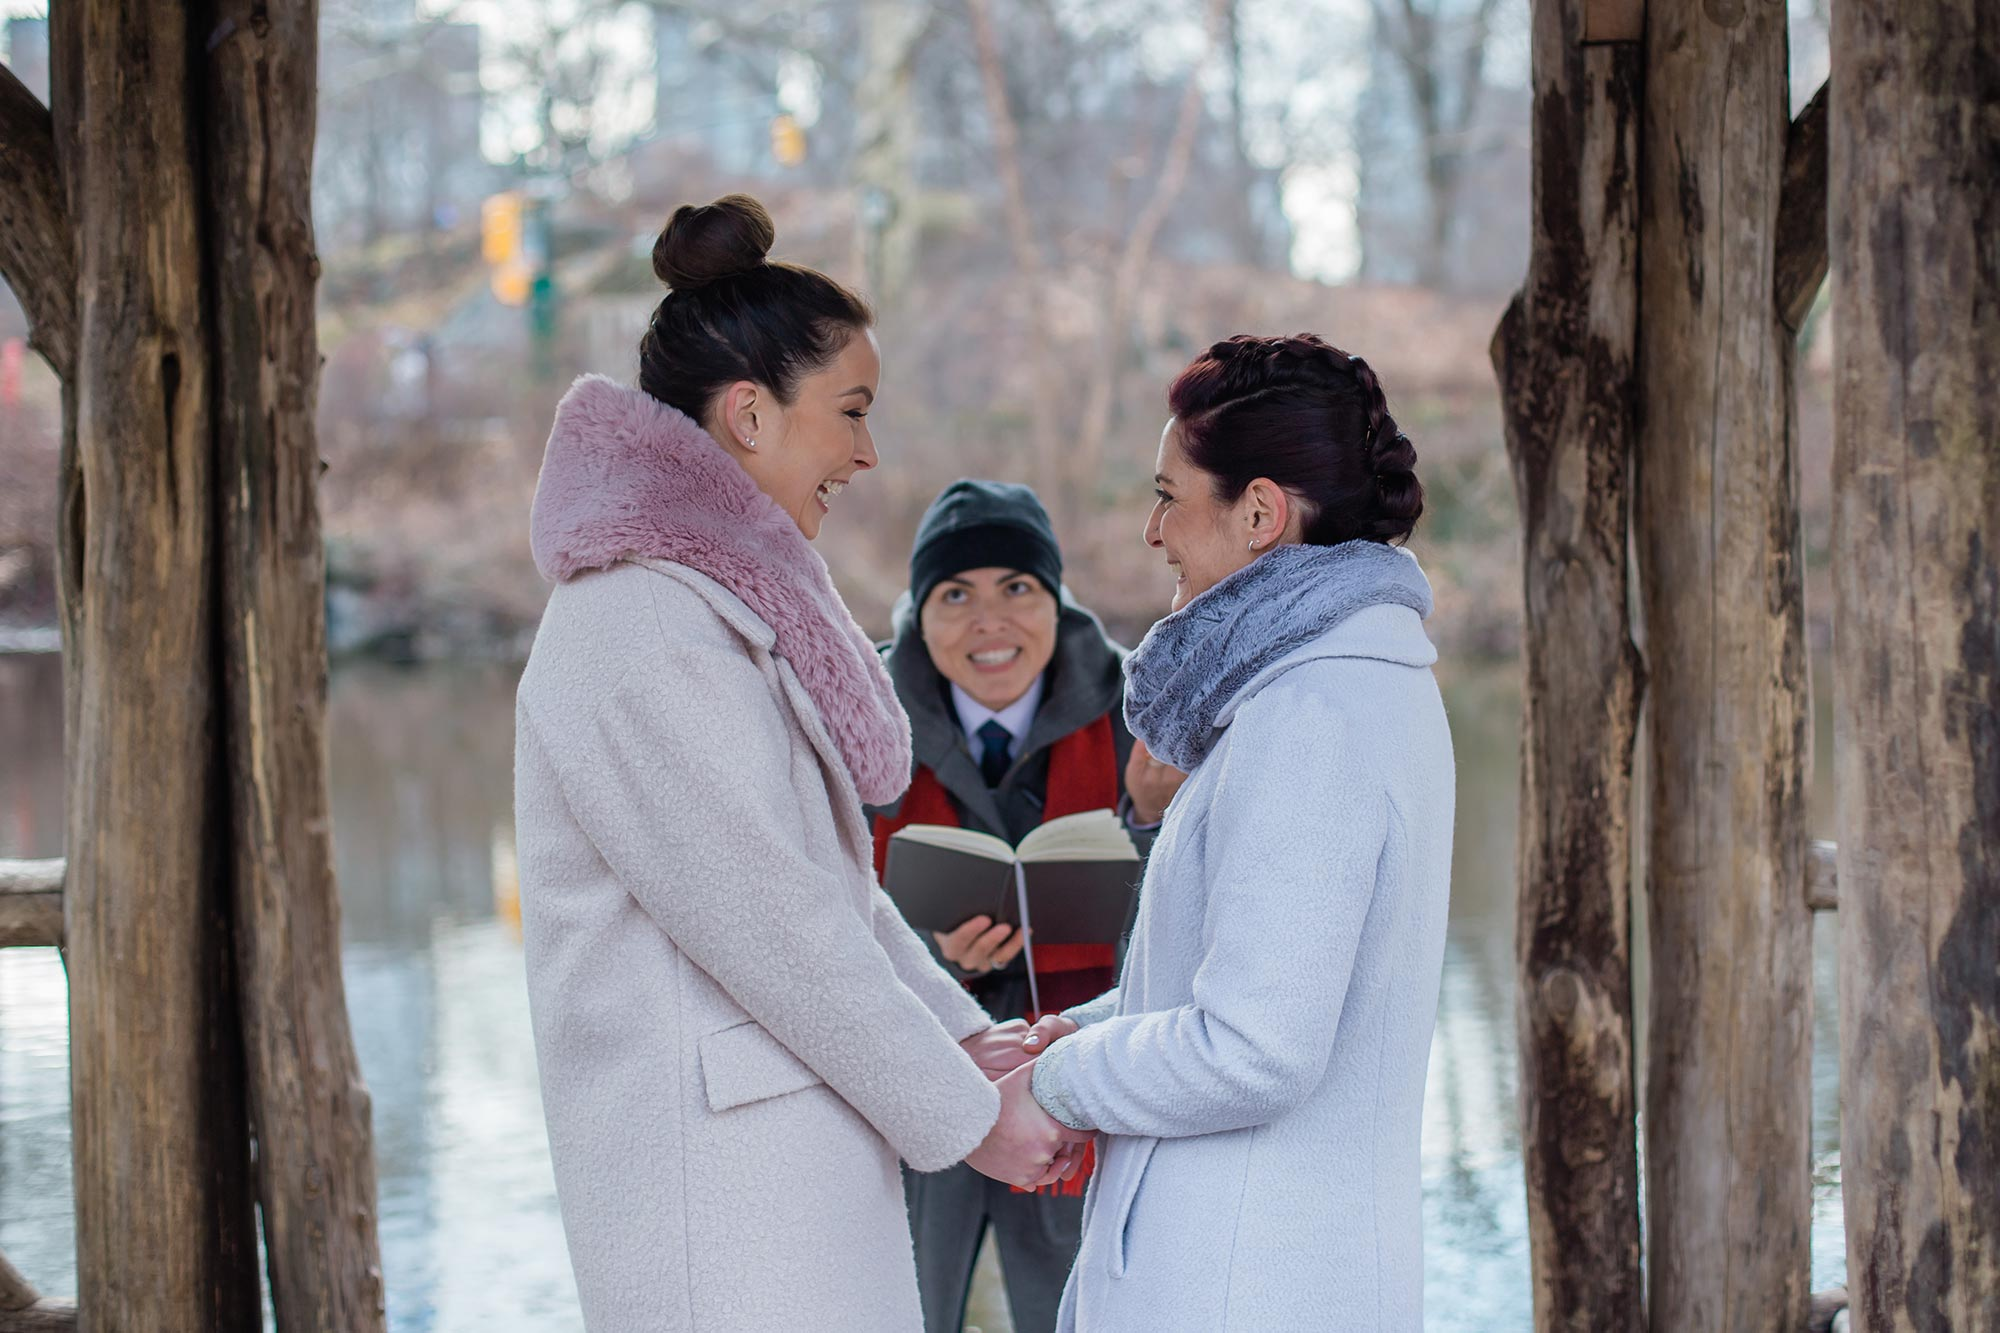 queer irish central park winter elopement kate alison photography couple smiling excitedly ceremony